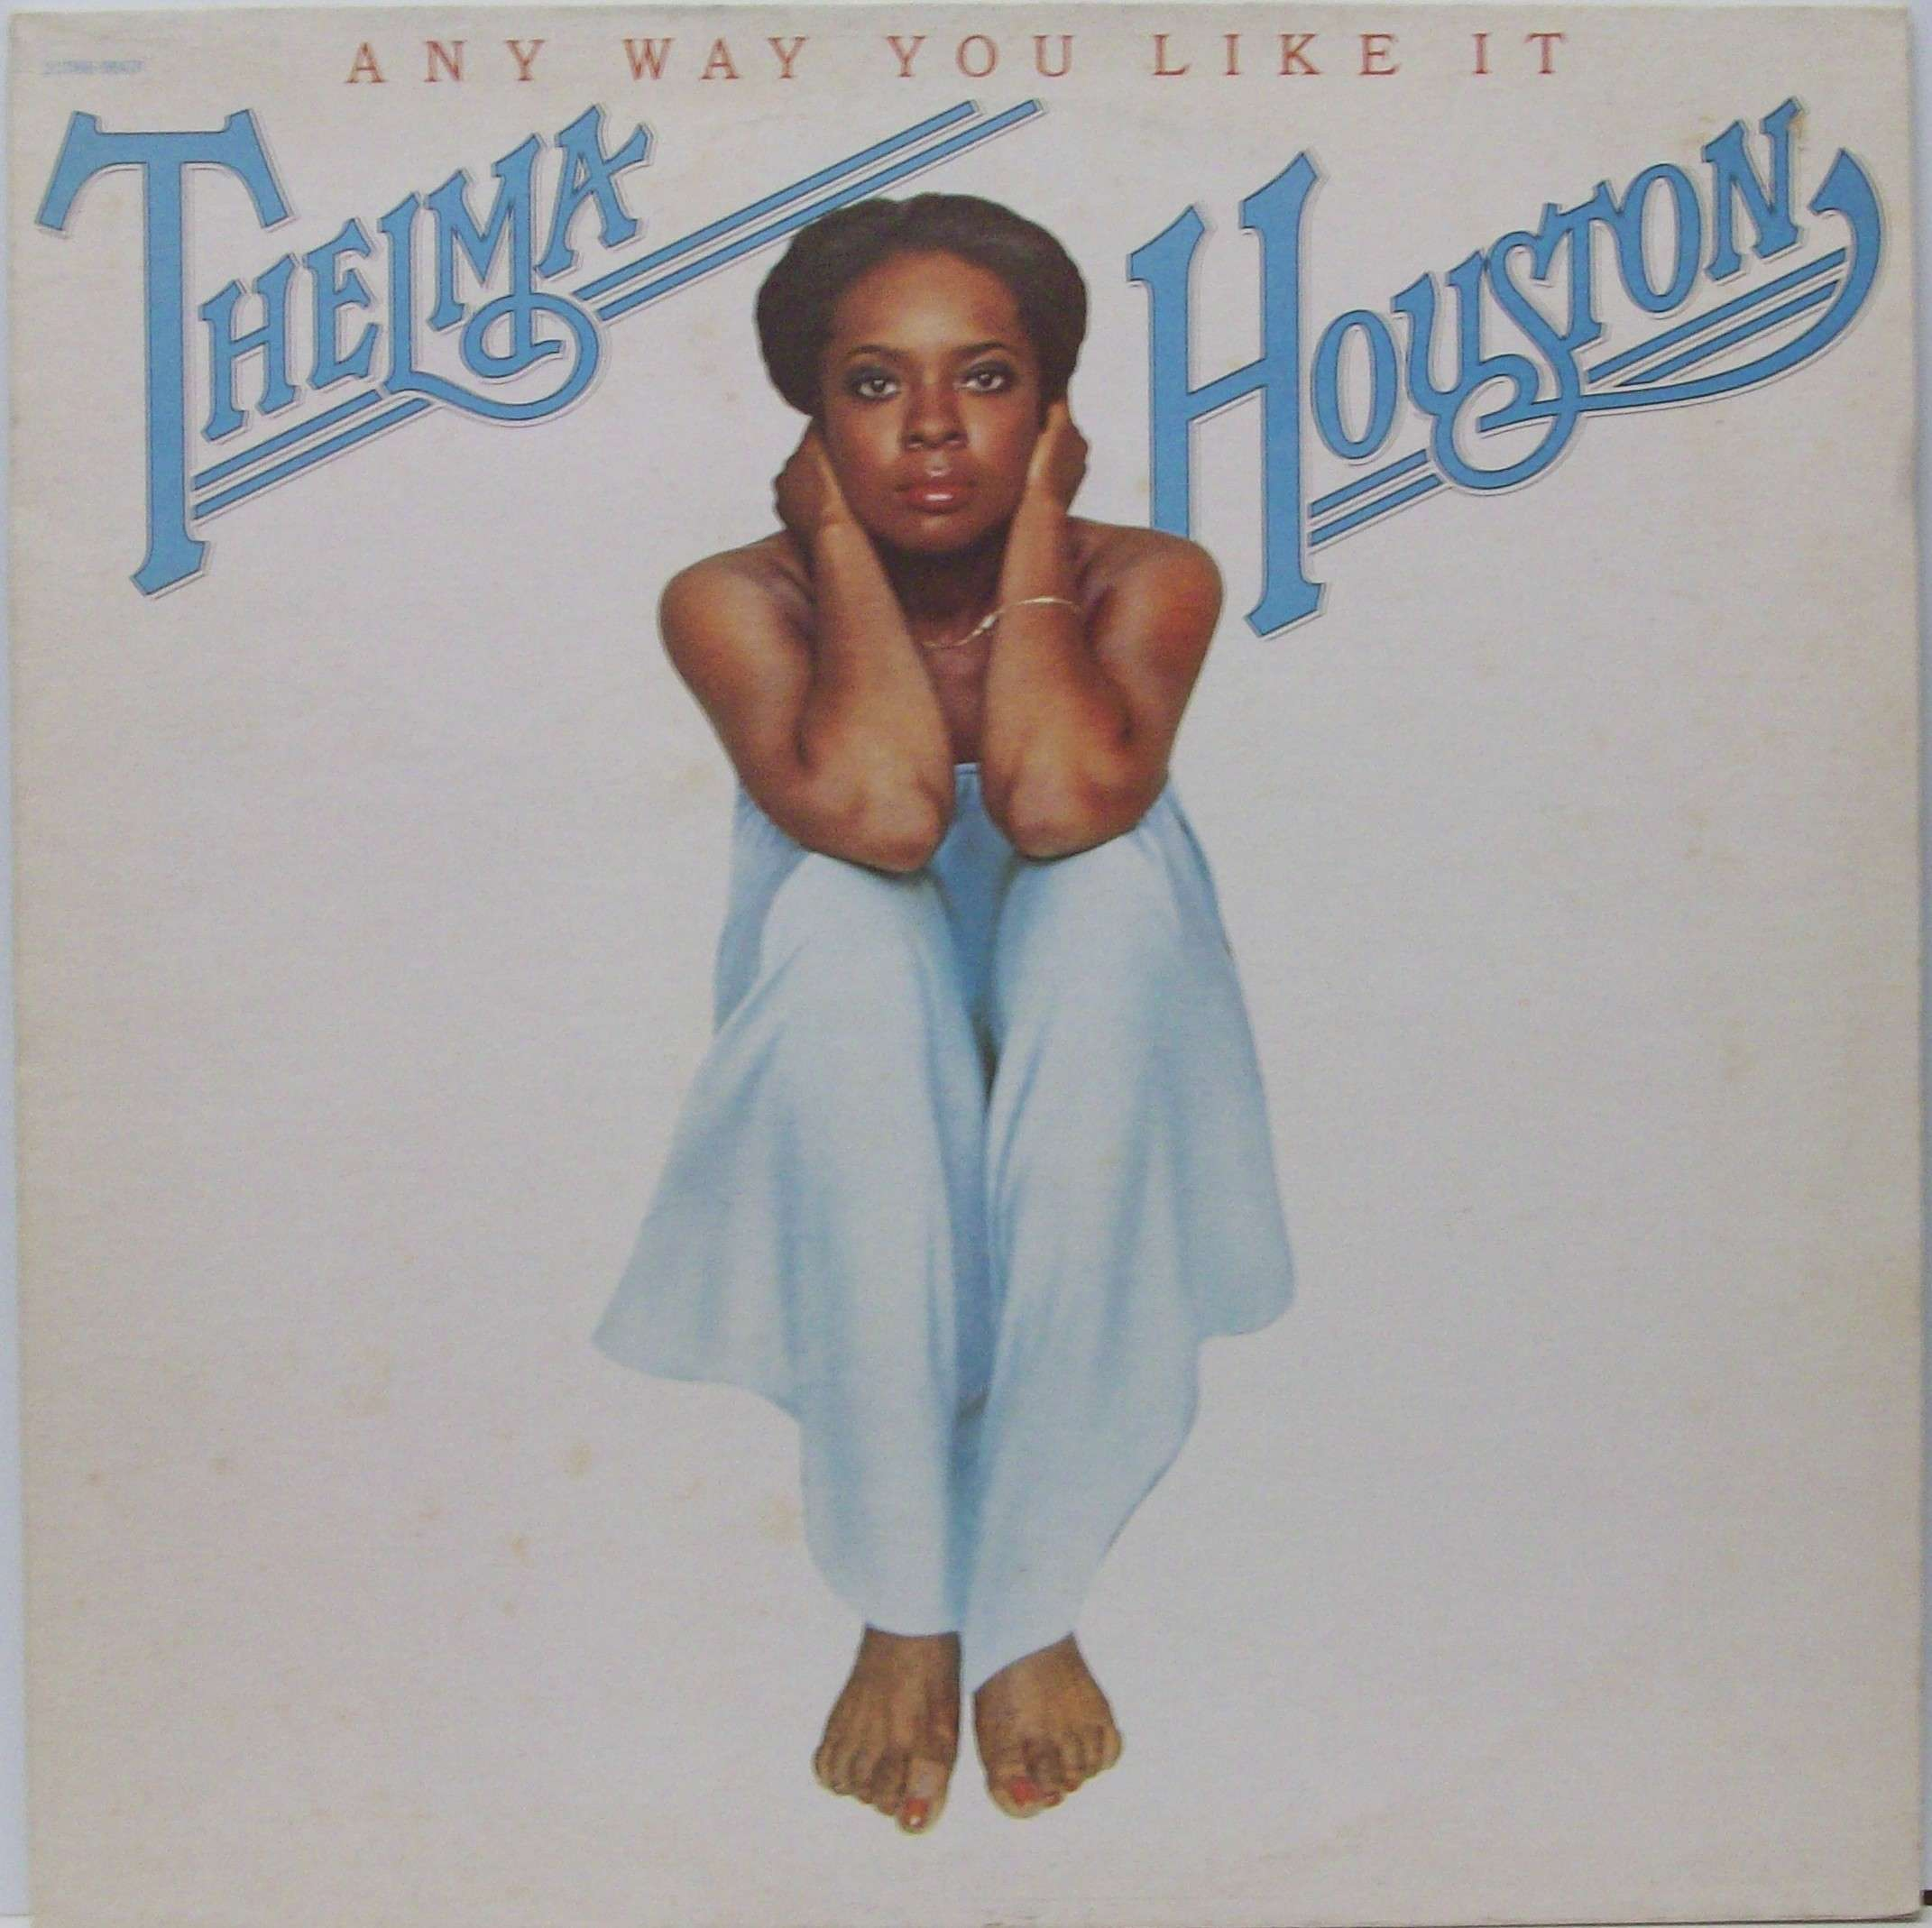 Any Way You Like It By Thelma Houston Lp With Jetrecords